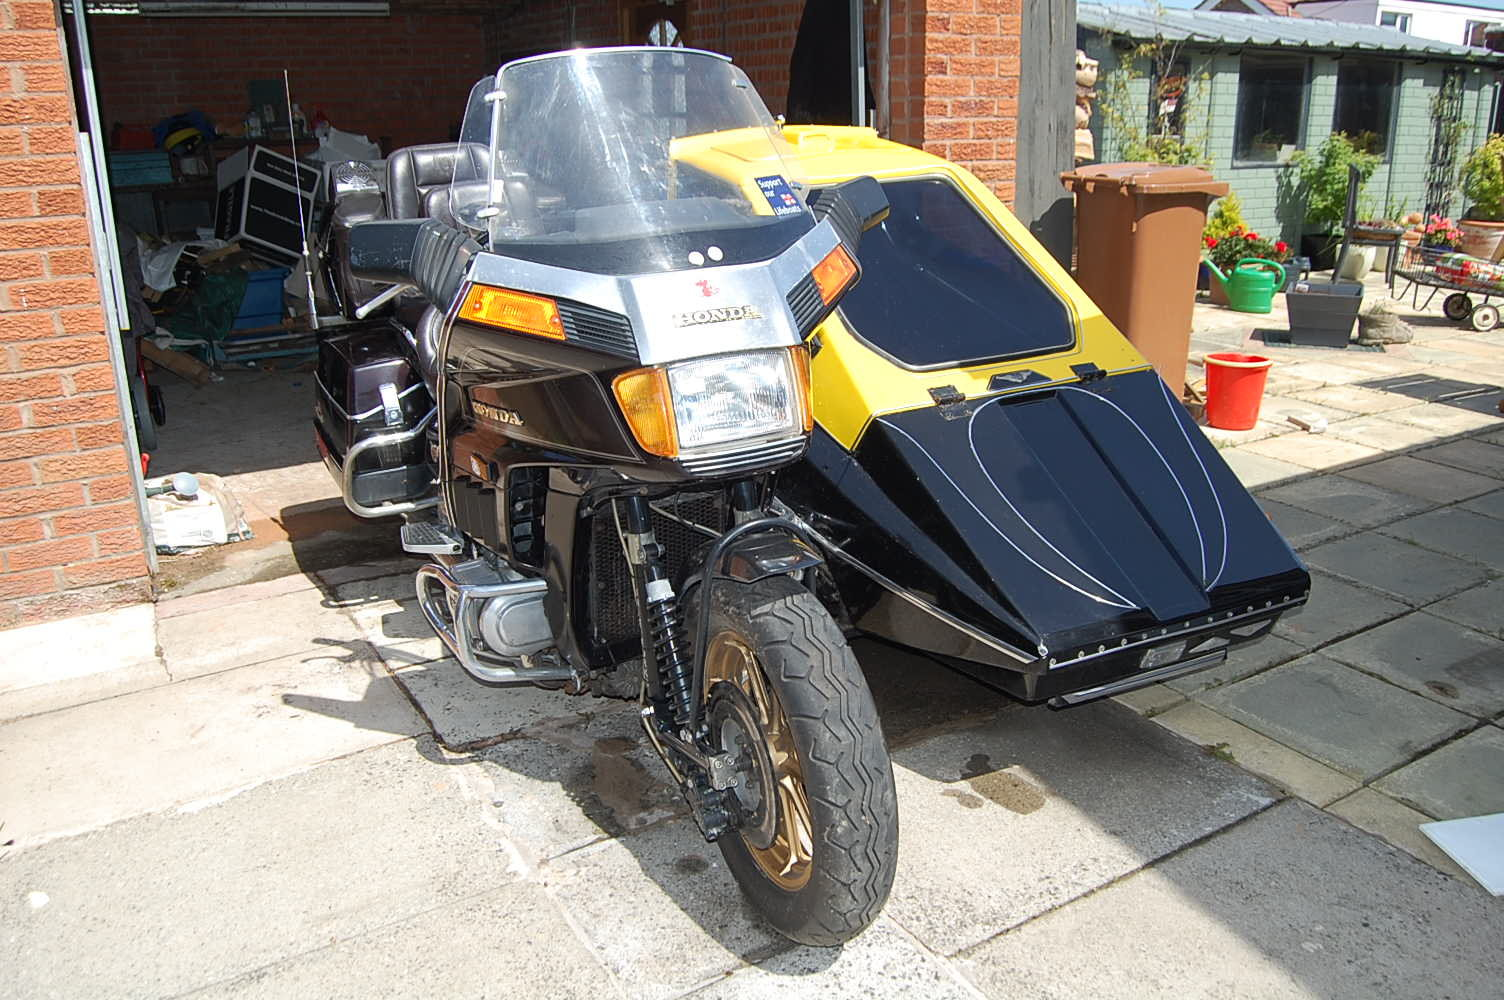 1996 HONDA 1200cc GOLD WING ASPENCADE OUTFIT For Sale (picture 1 of 6)